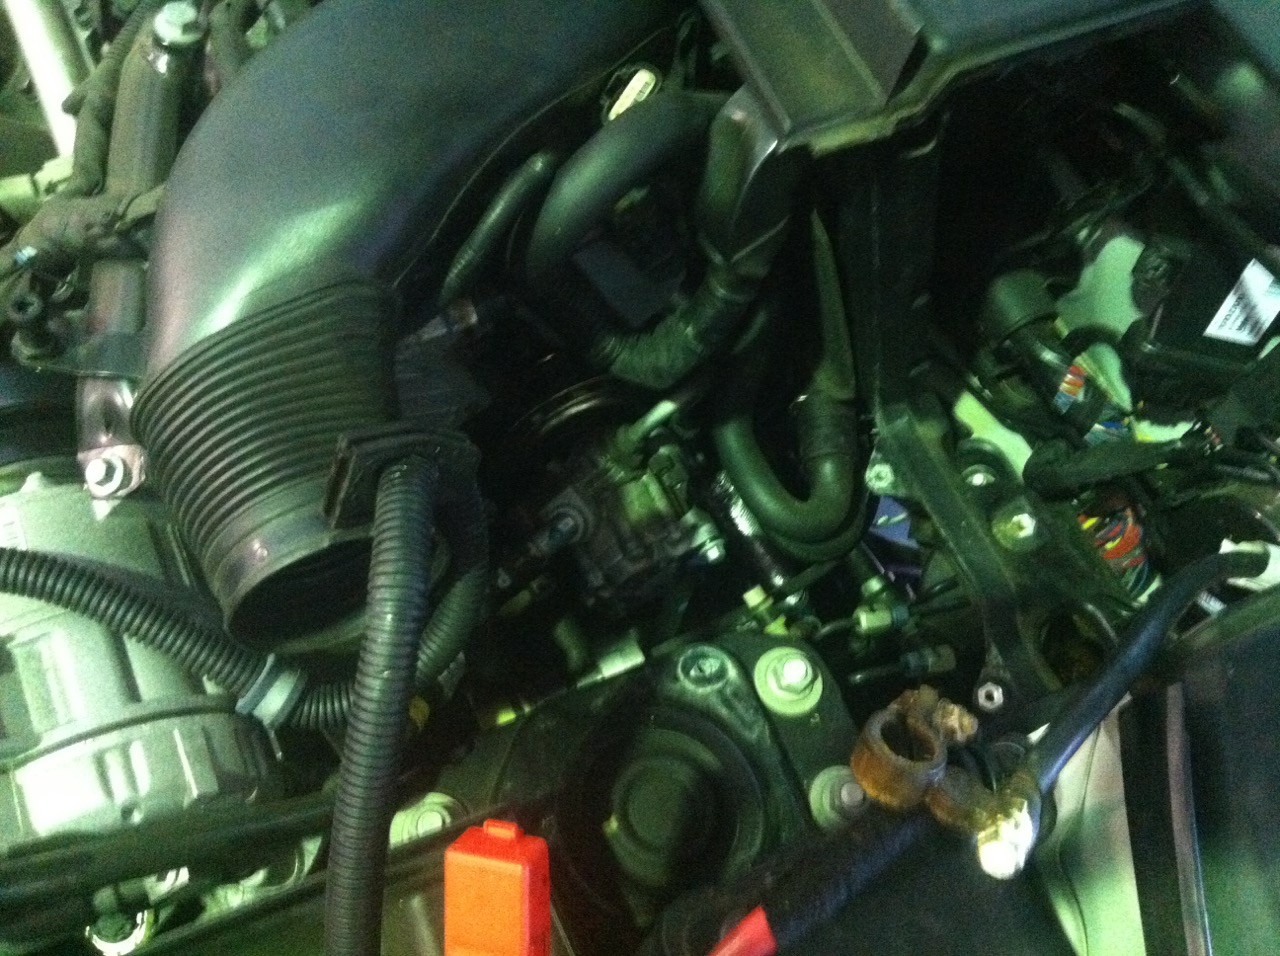 How To Xc60 T6 Brake Vacuum Pump Rebuild Kit So Is This Basically A Power Steering Img 0059